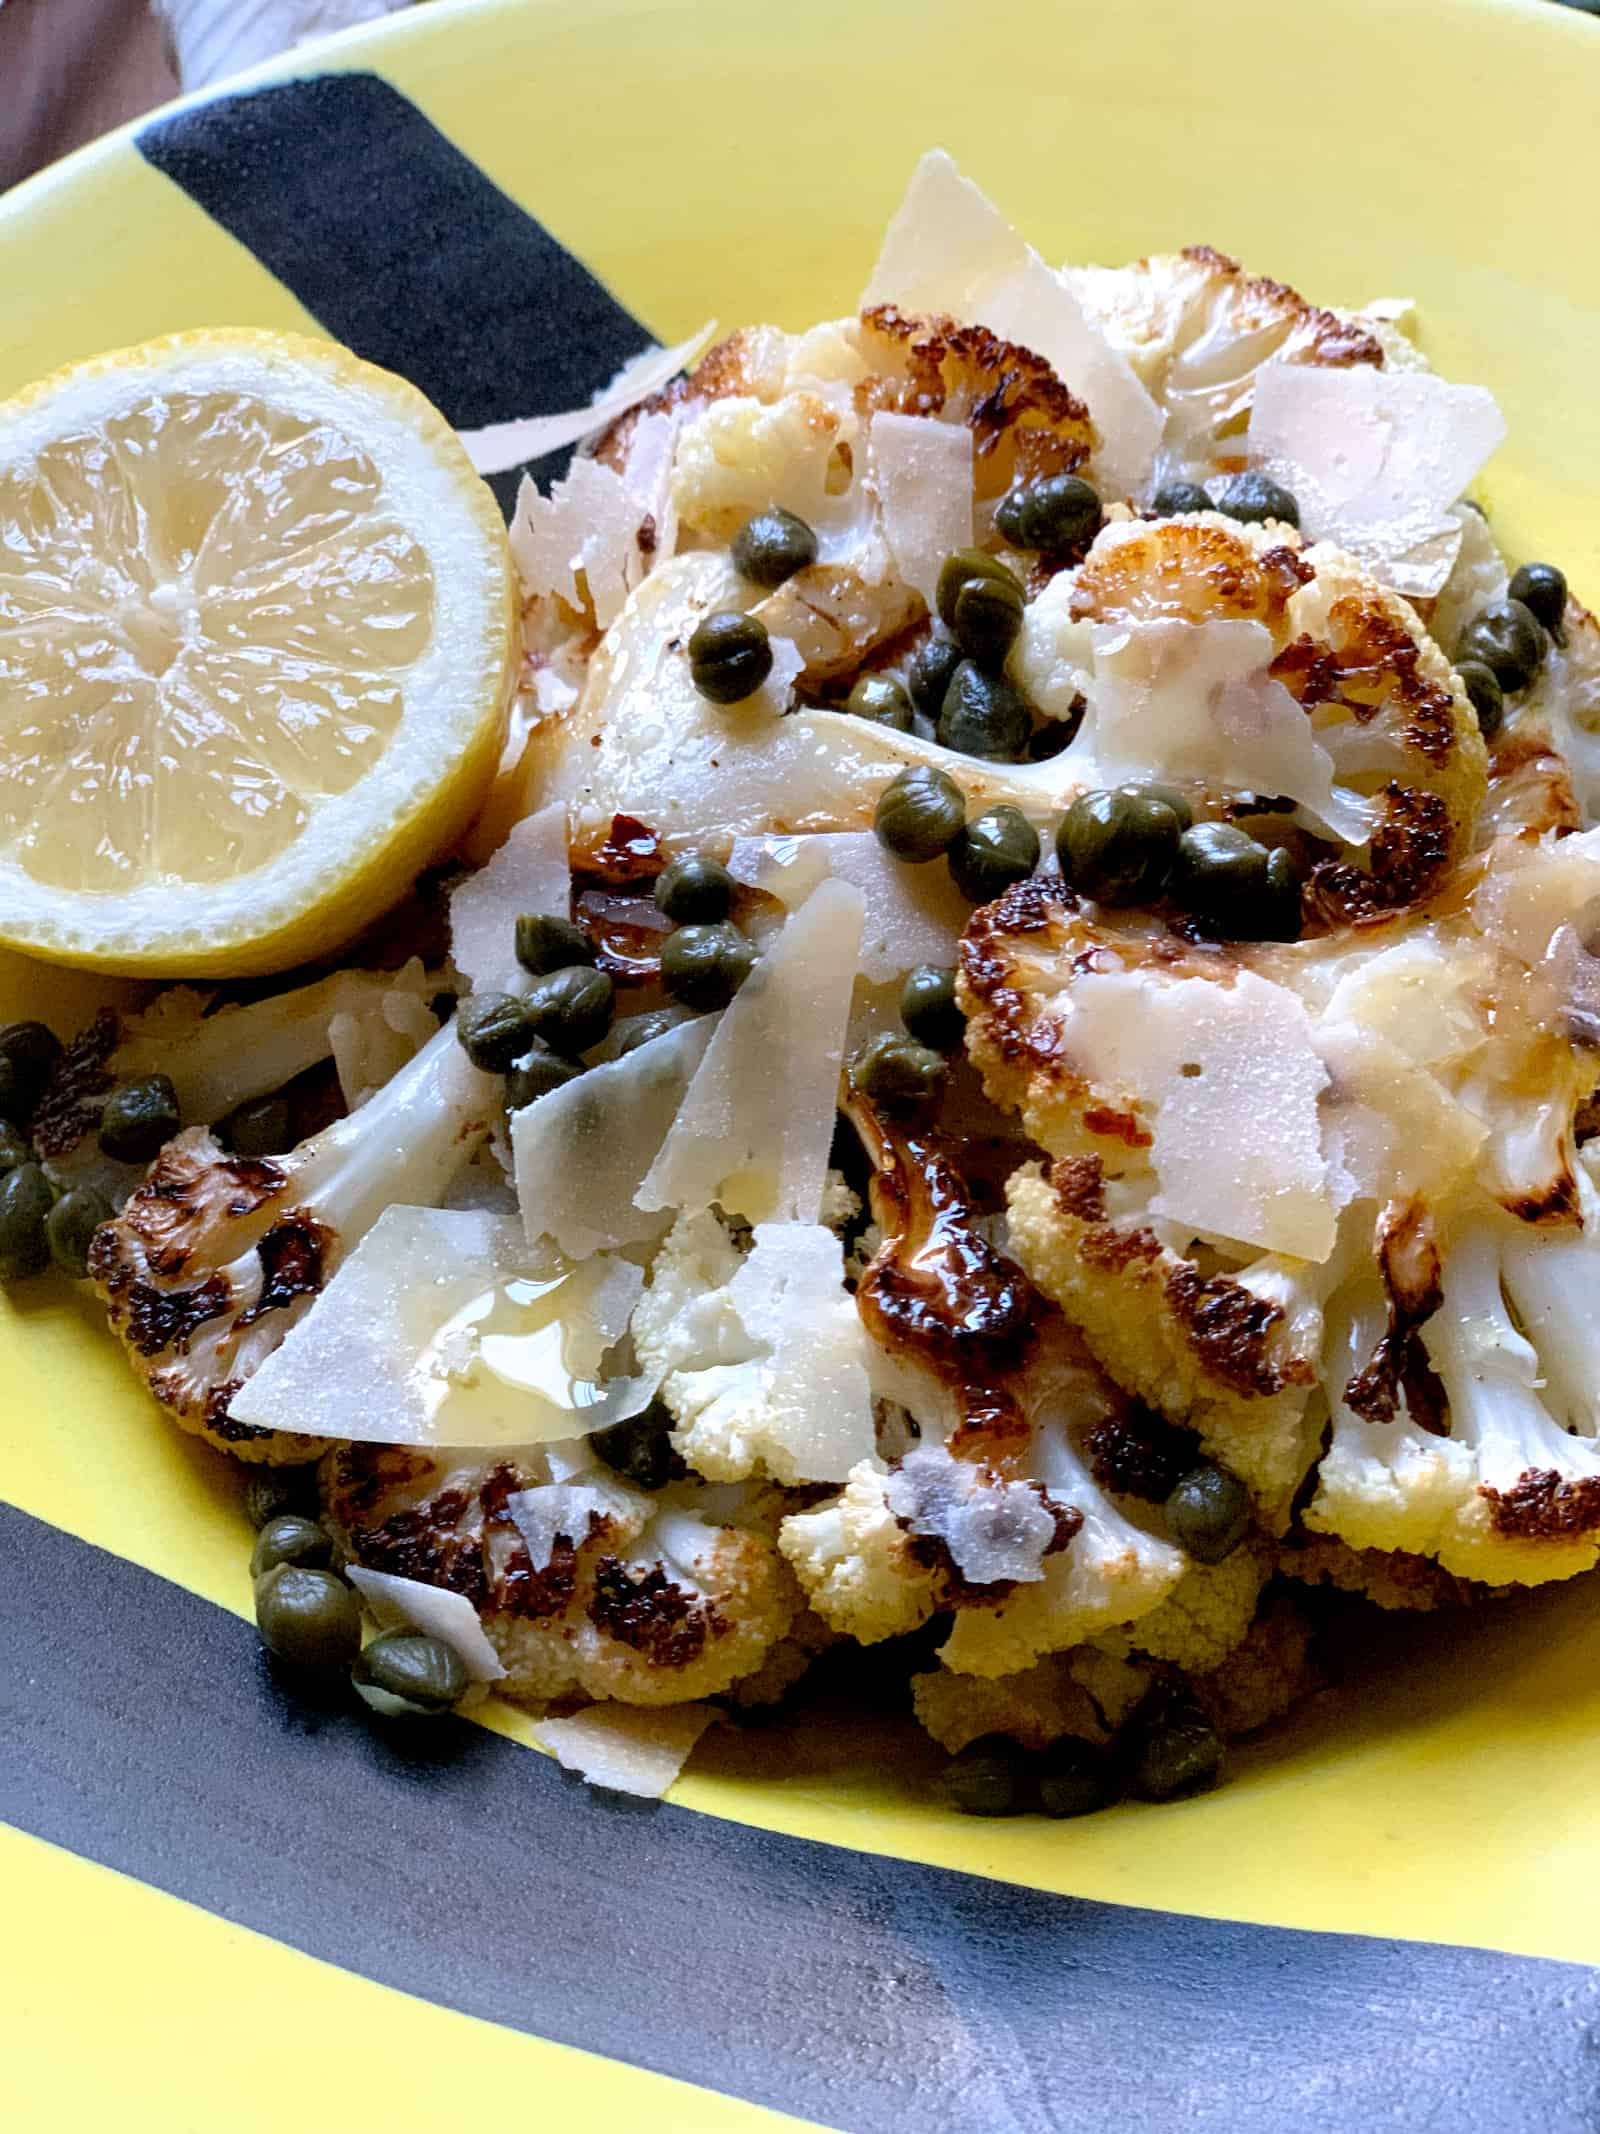 A yellow and black plate with roasted cauliflower, capers, shaved parmesan cheese and olive/lemon dressing. Half a lemon is on the side of the plate.